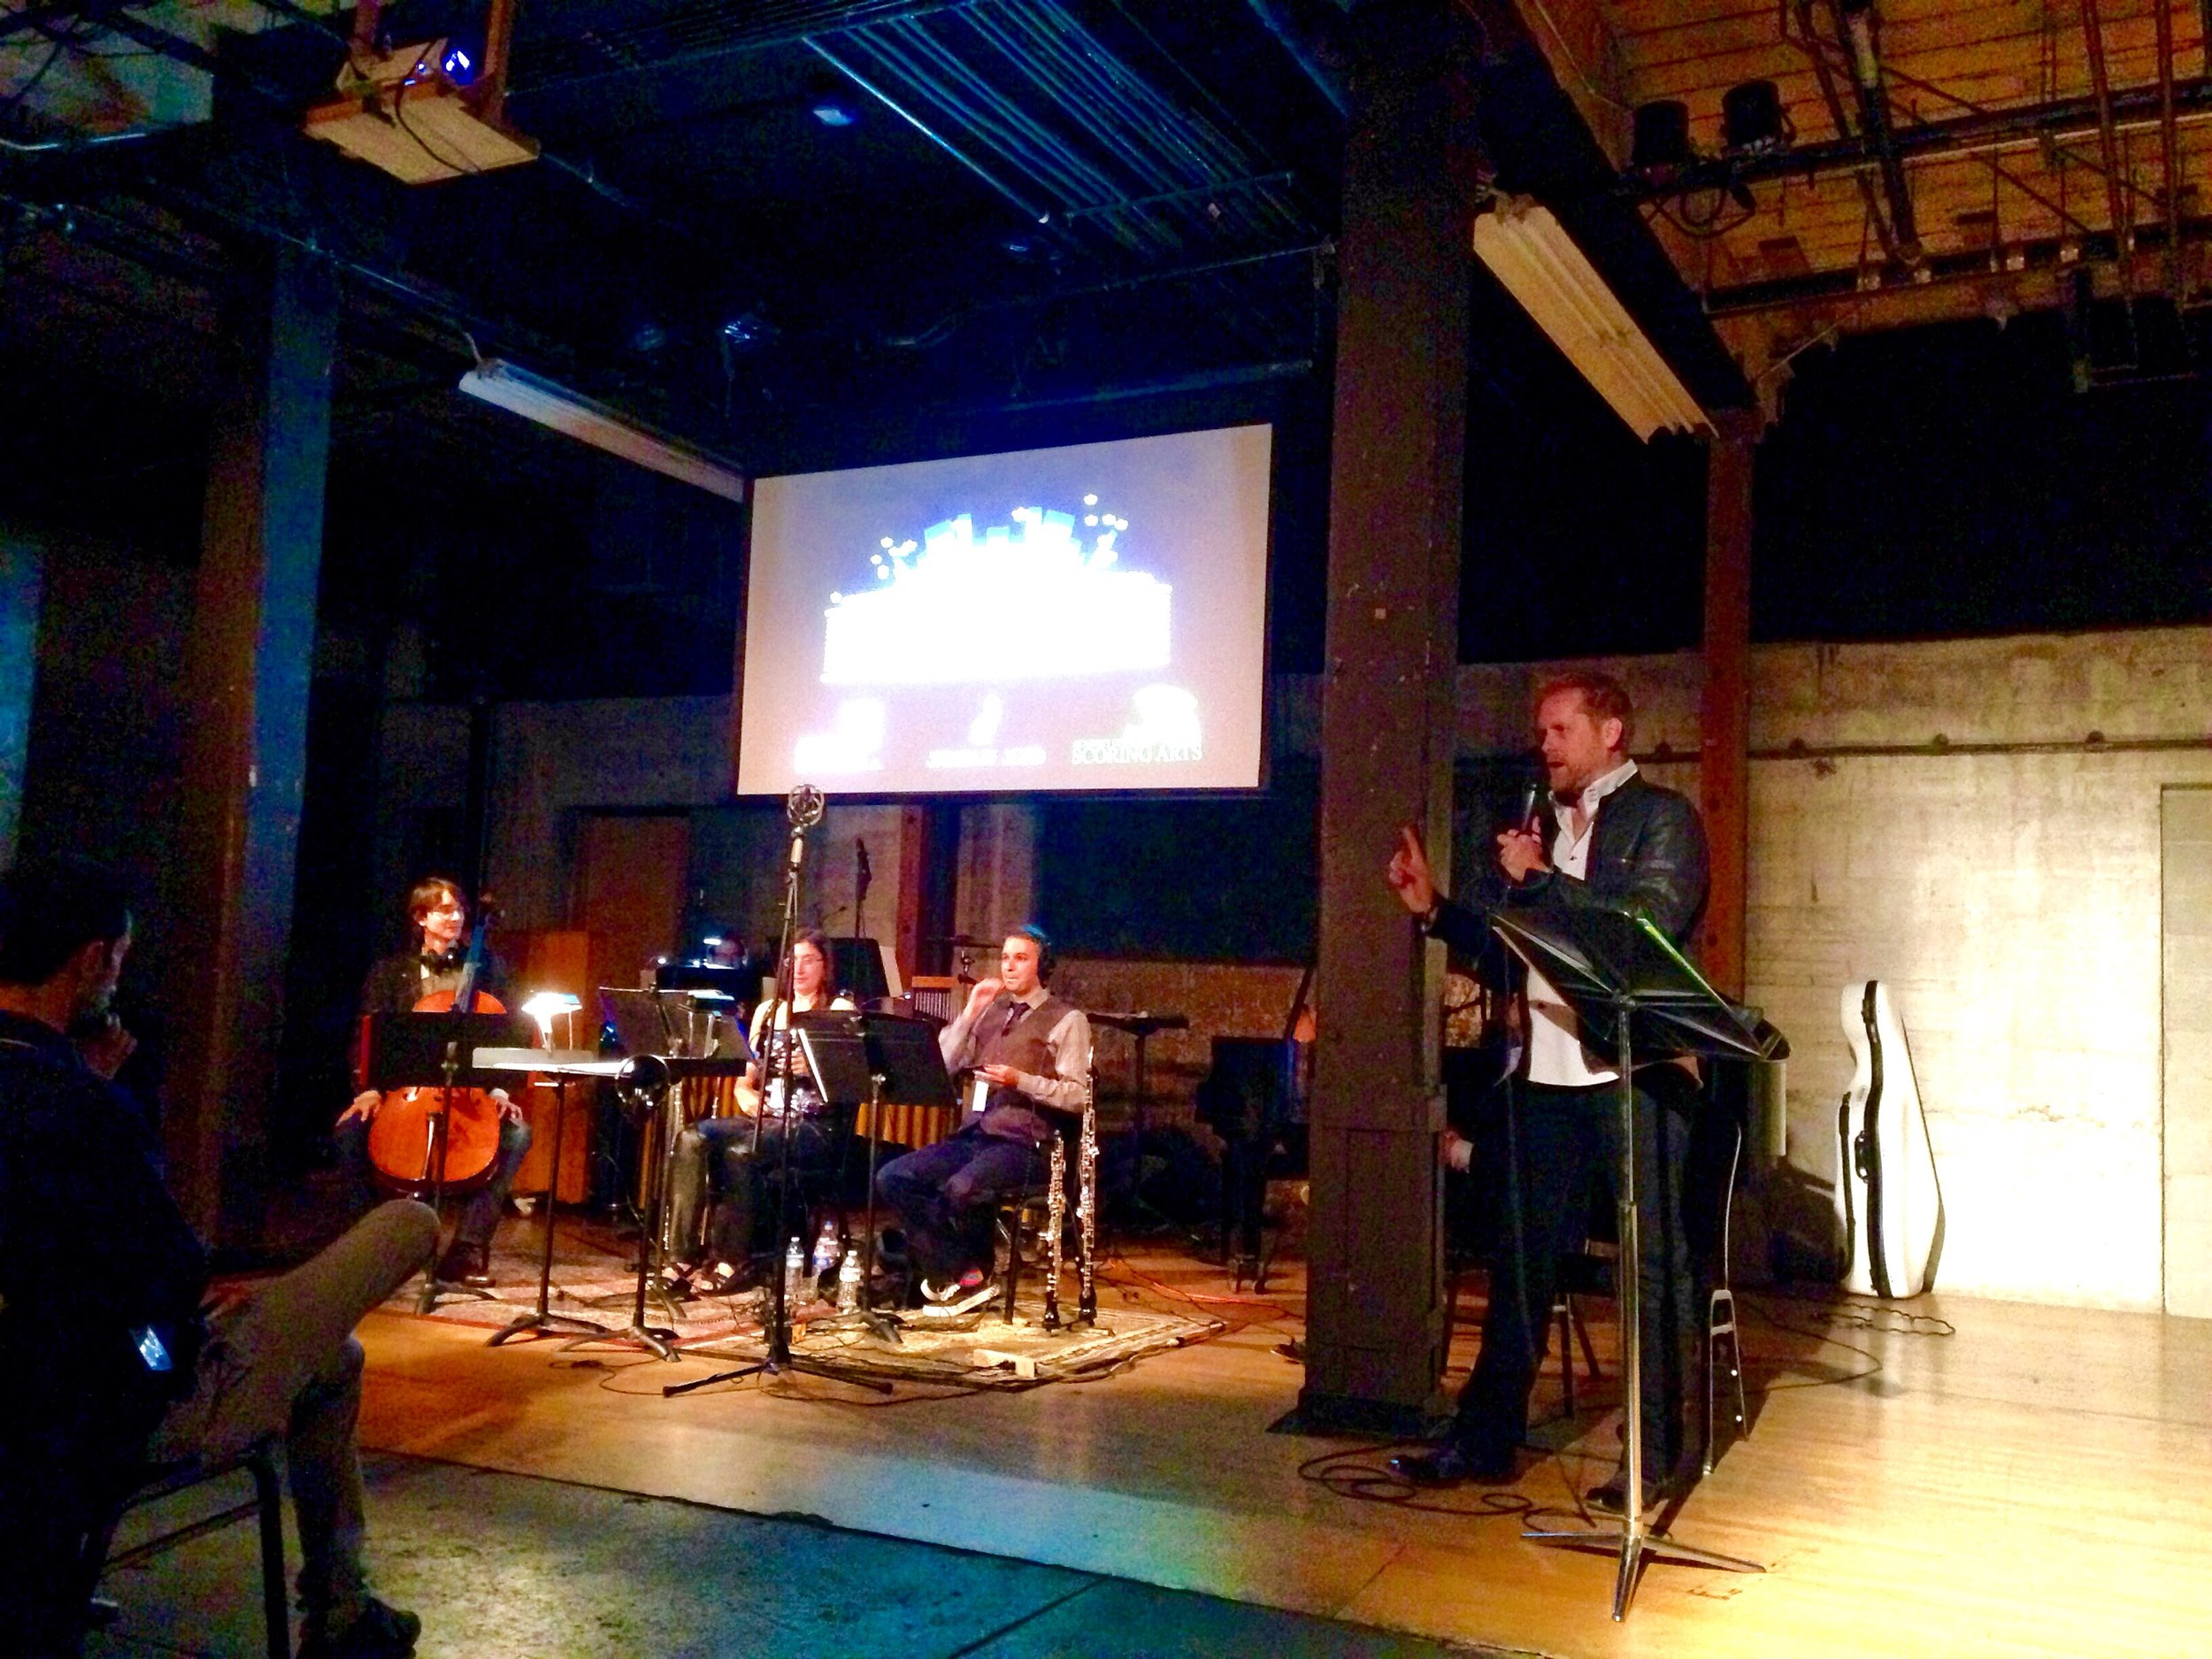 Brian Ralston, host, welcoming the audience to the 2016 Los Angeles Live Score Film Festival at ArtShare LA on April 30, 2016.